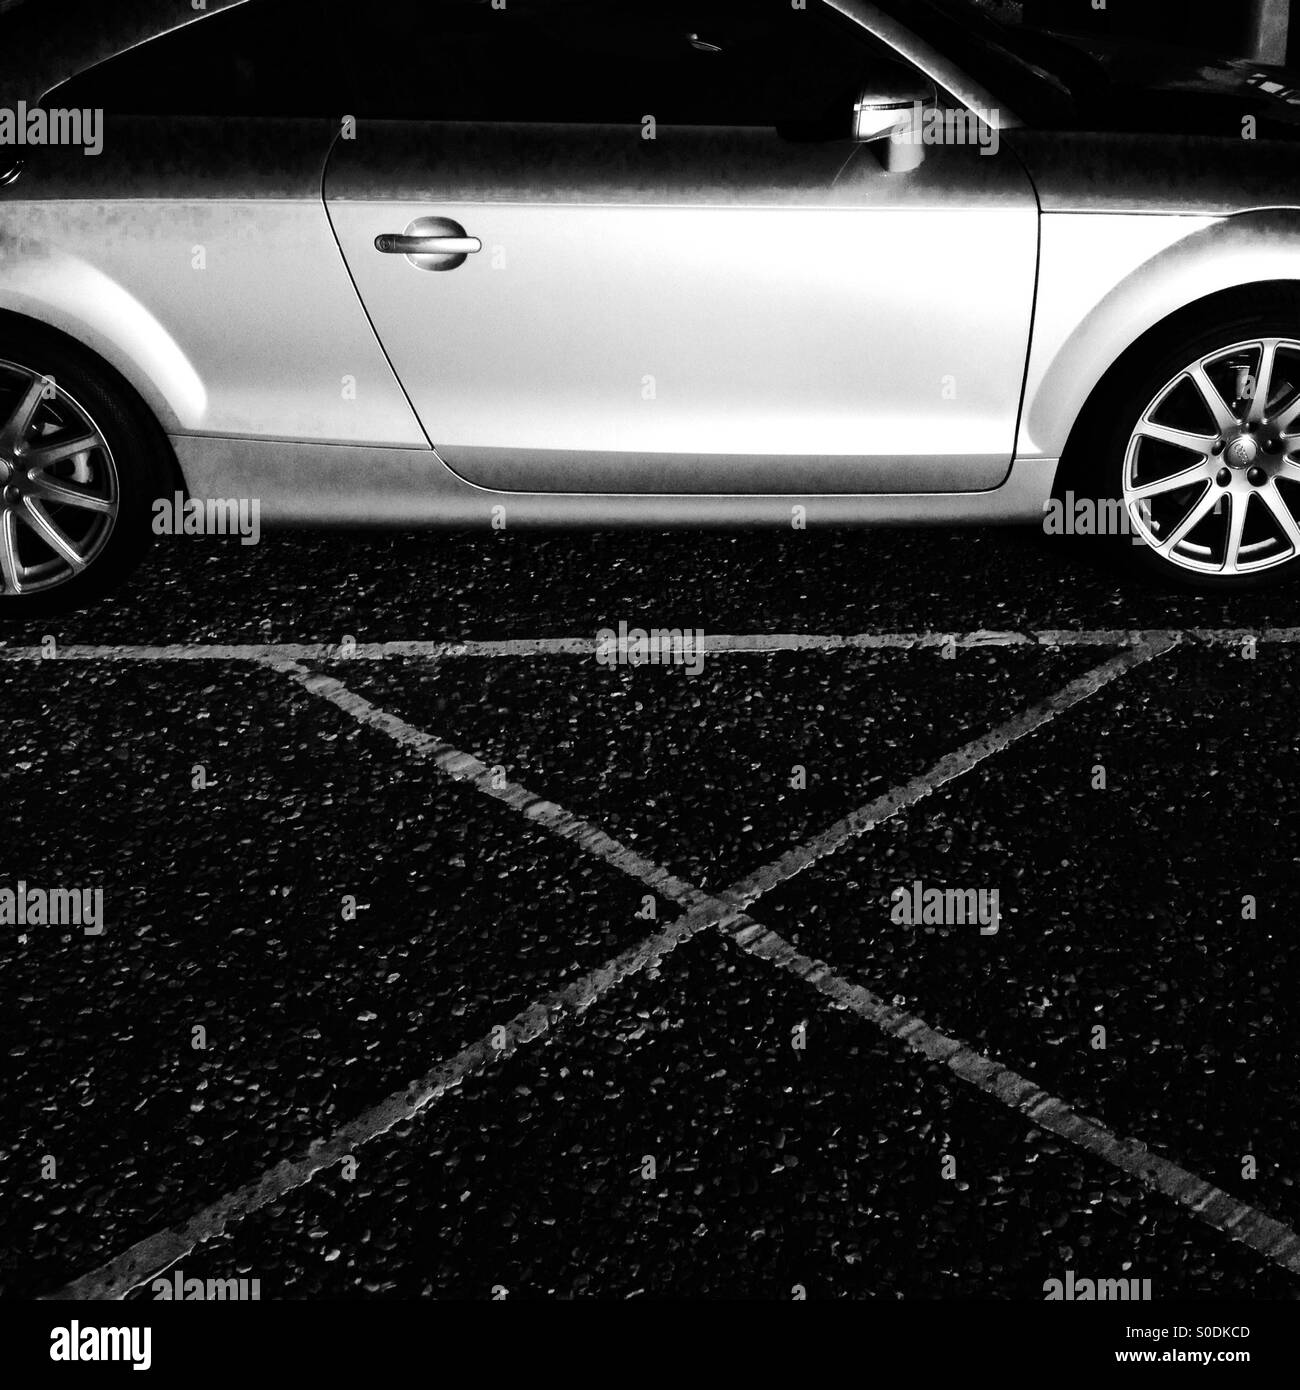 Audi Car Black And White Stock Photos & Images